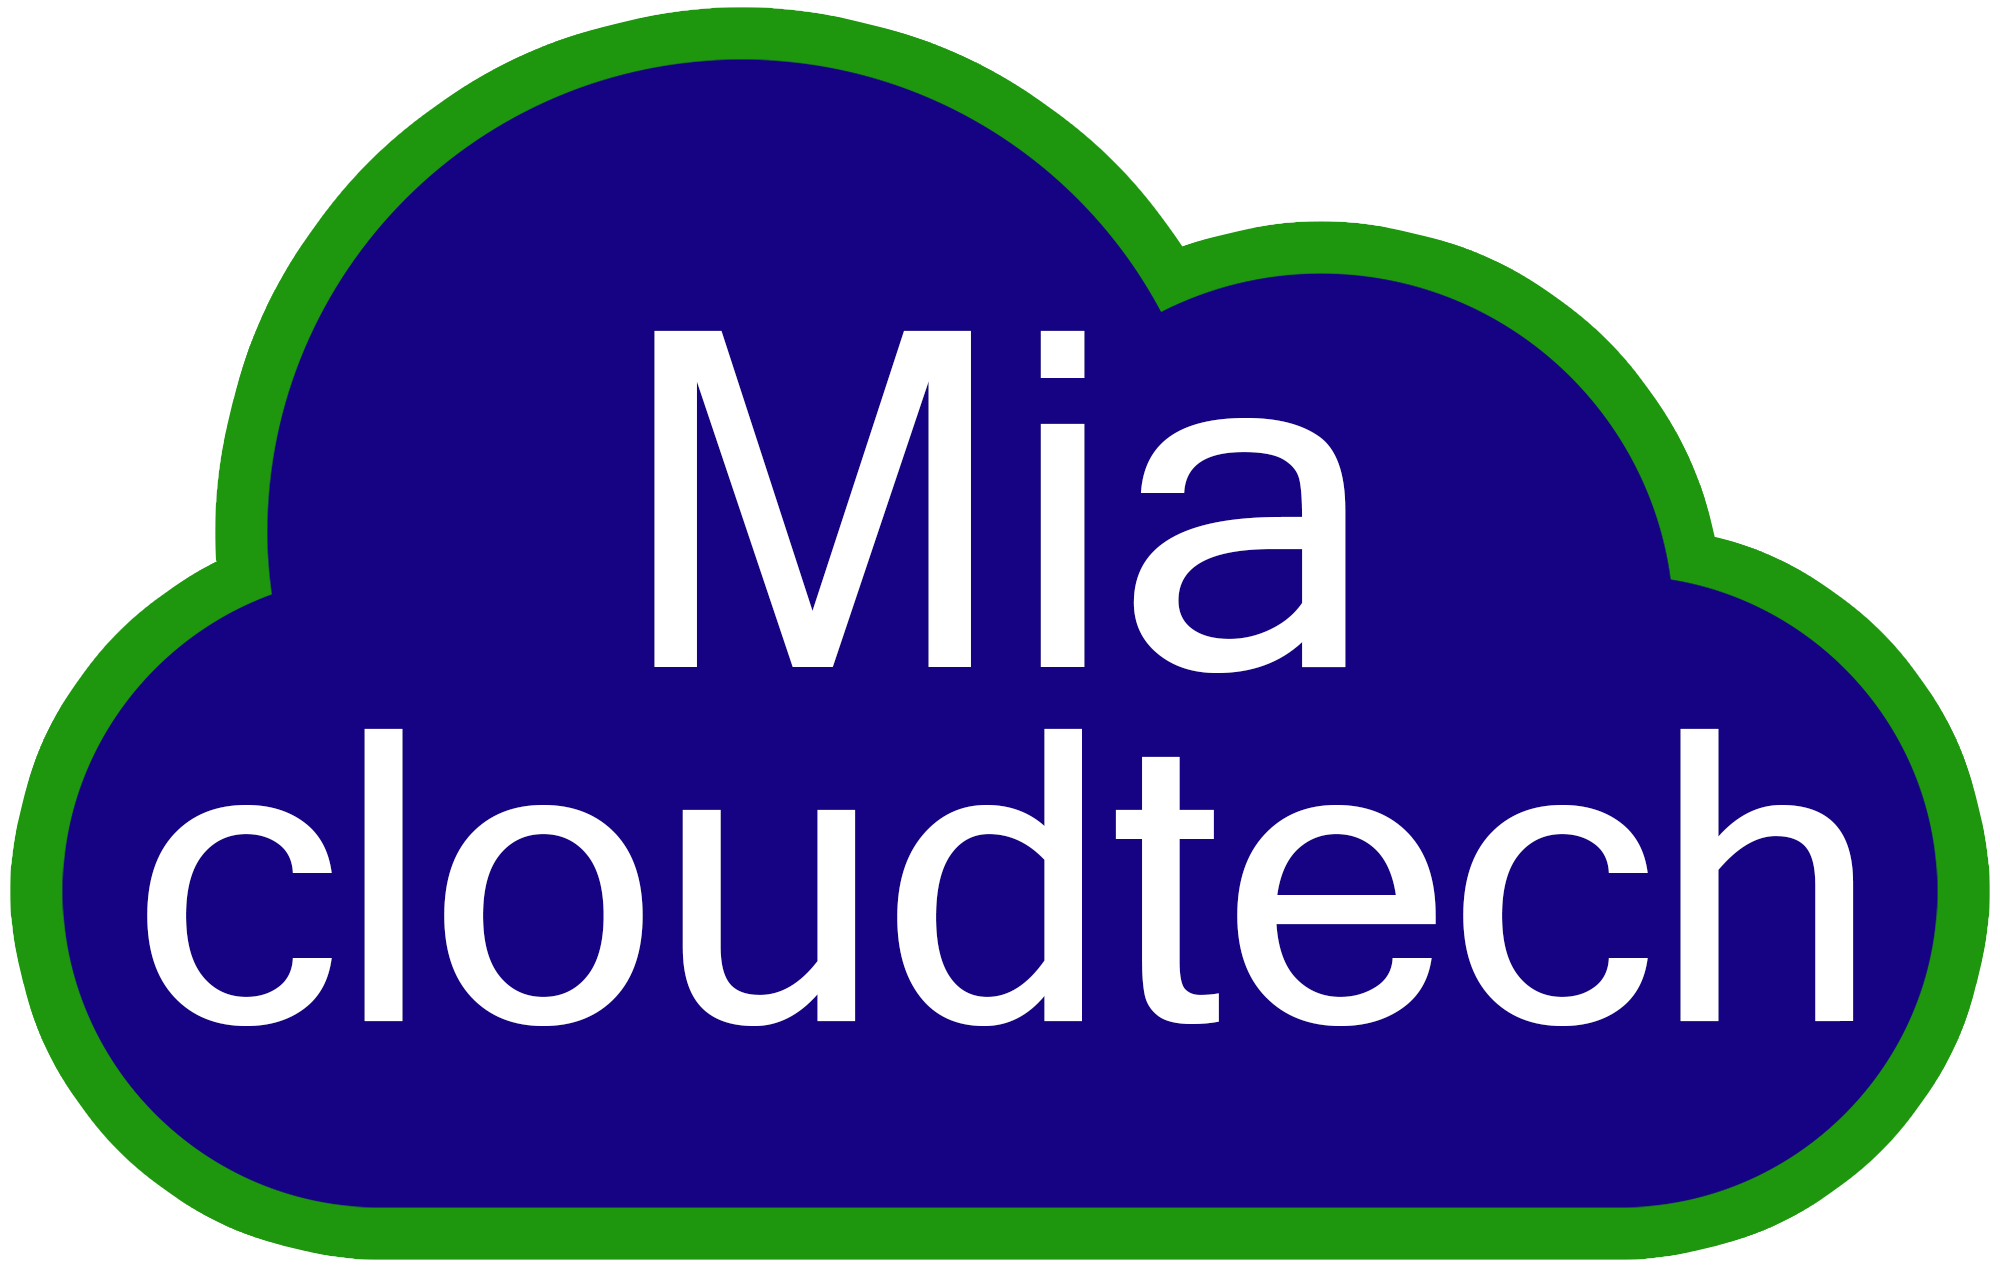 Please click here for the Mia Cloud Tech home page